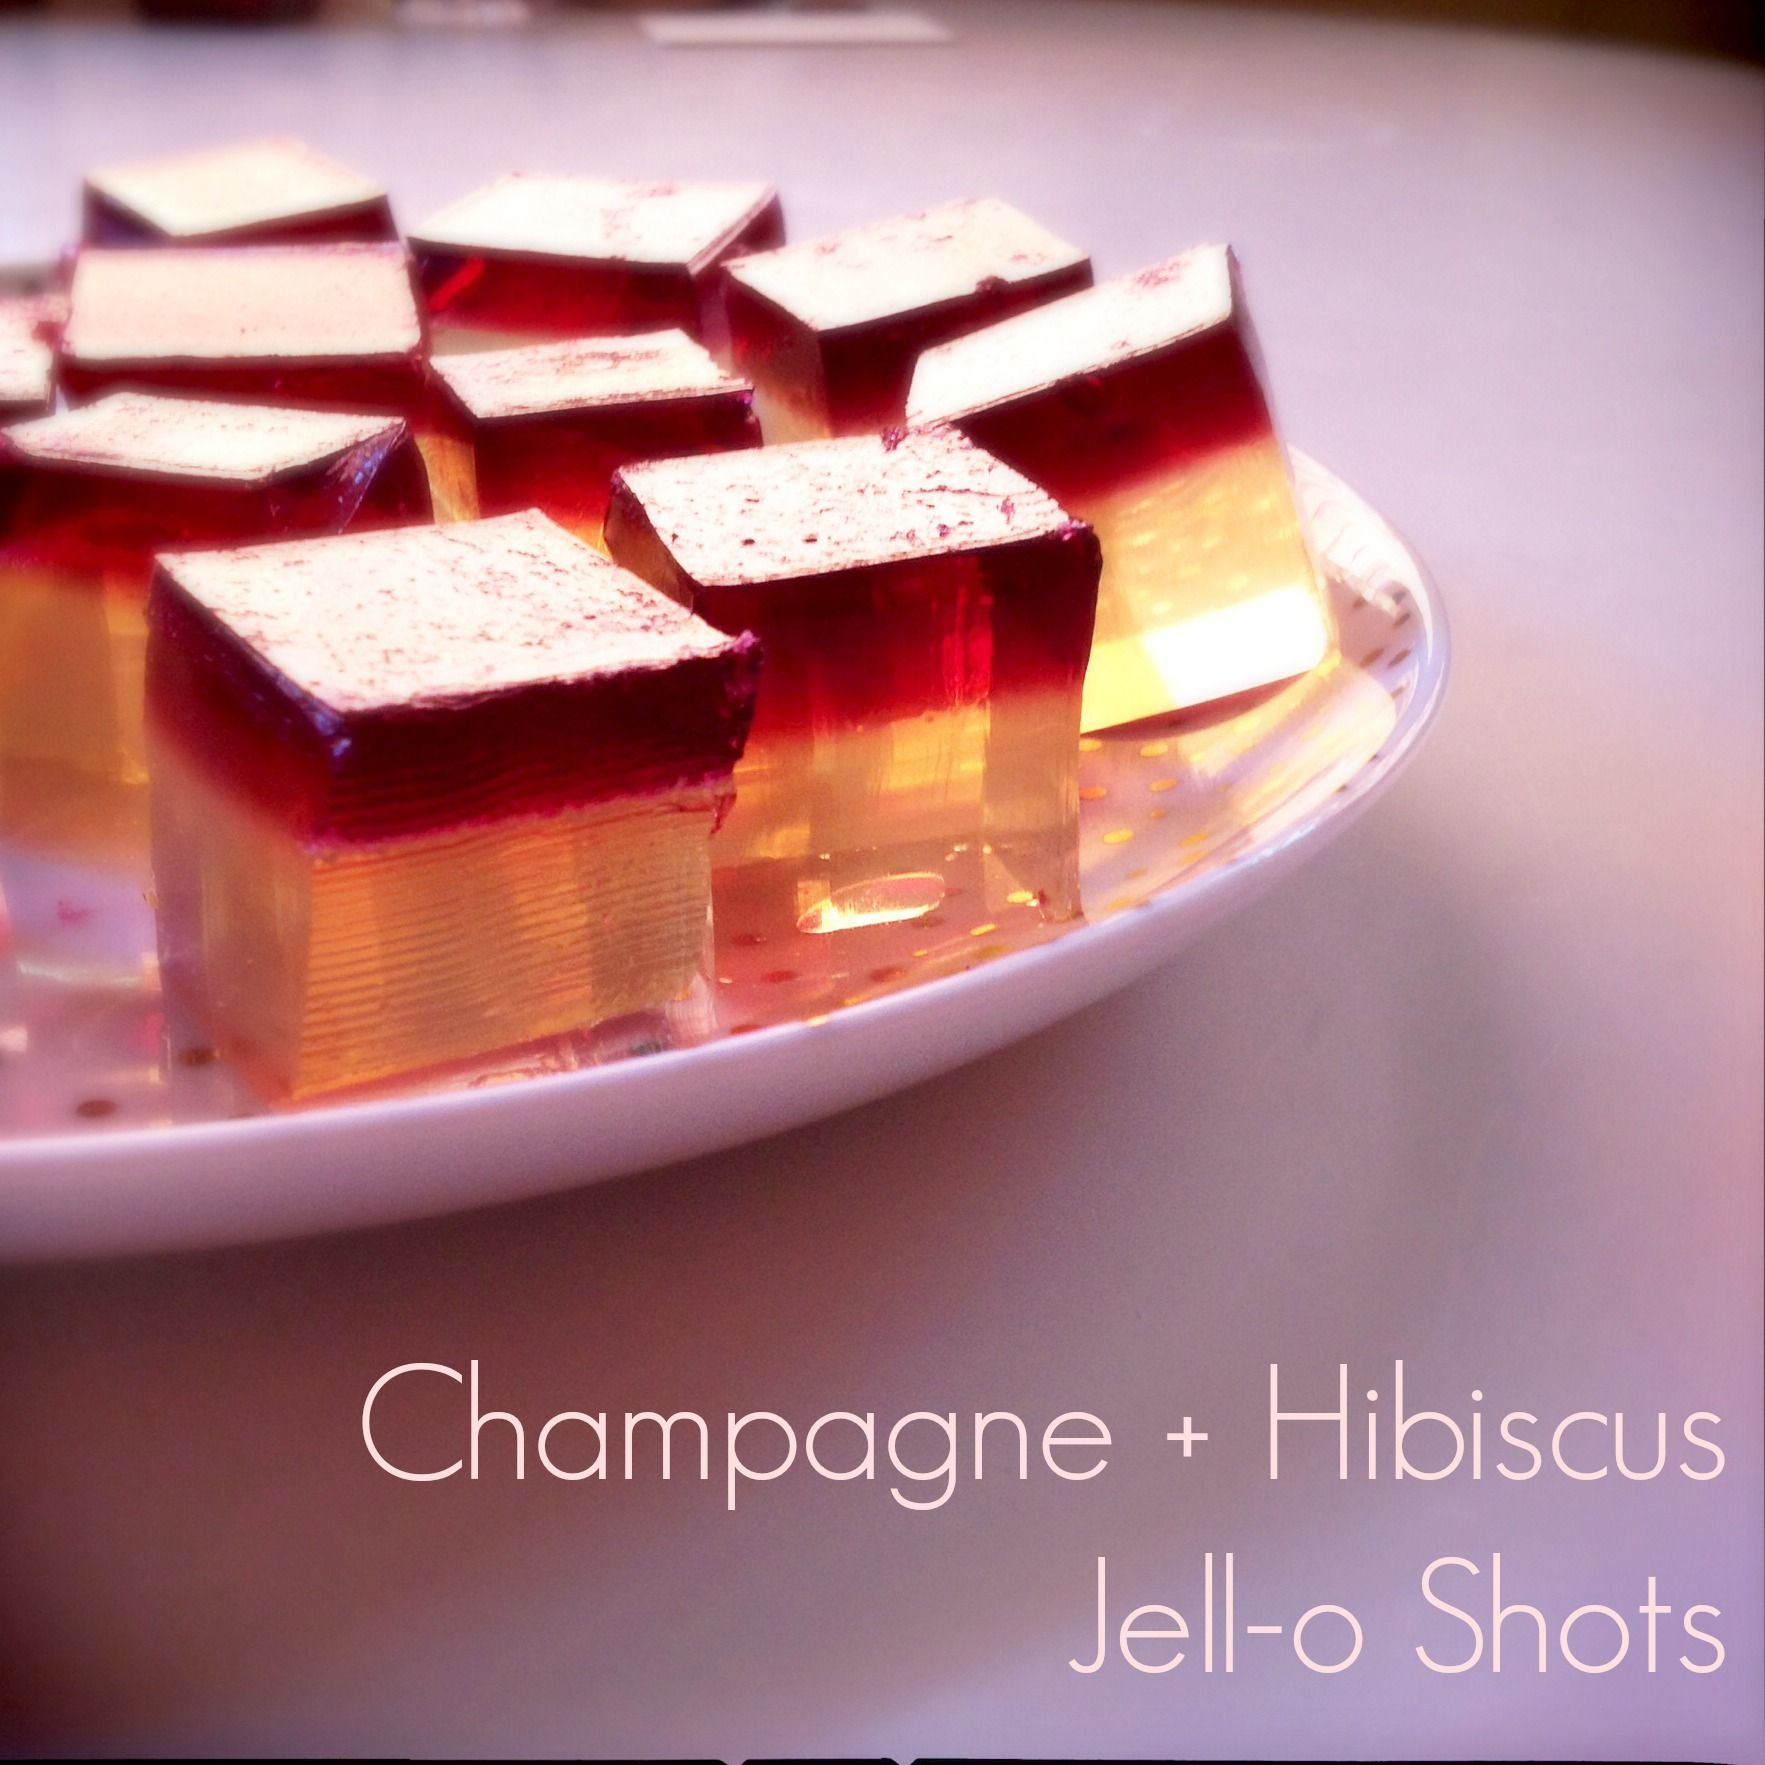 Champagne hibiscus jell o shots featuring hibiscus flowers in champagne hibiscus jell o shots featuring hibiscus flowers in syrup izmirmasajfo